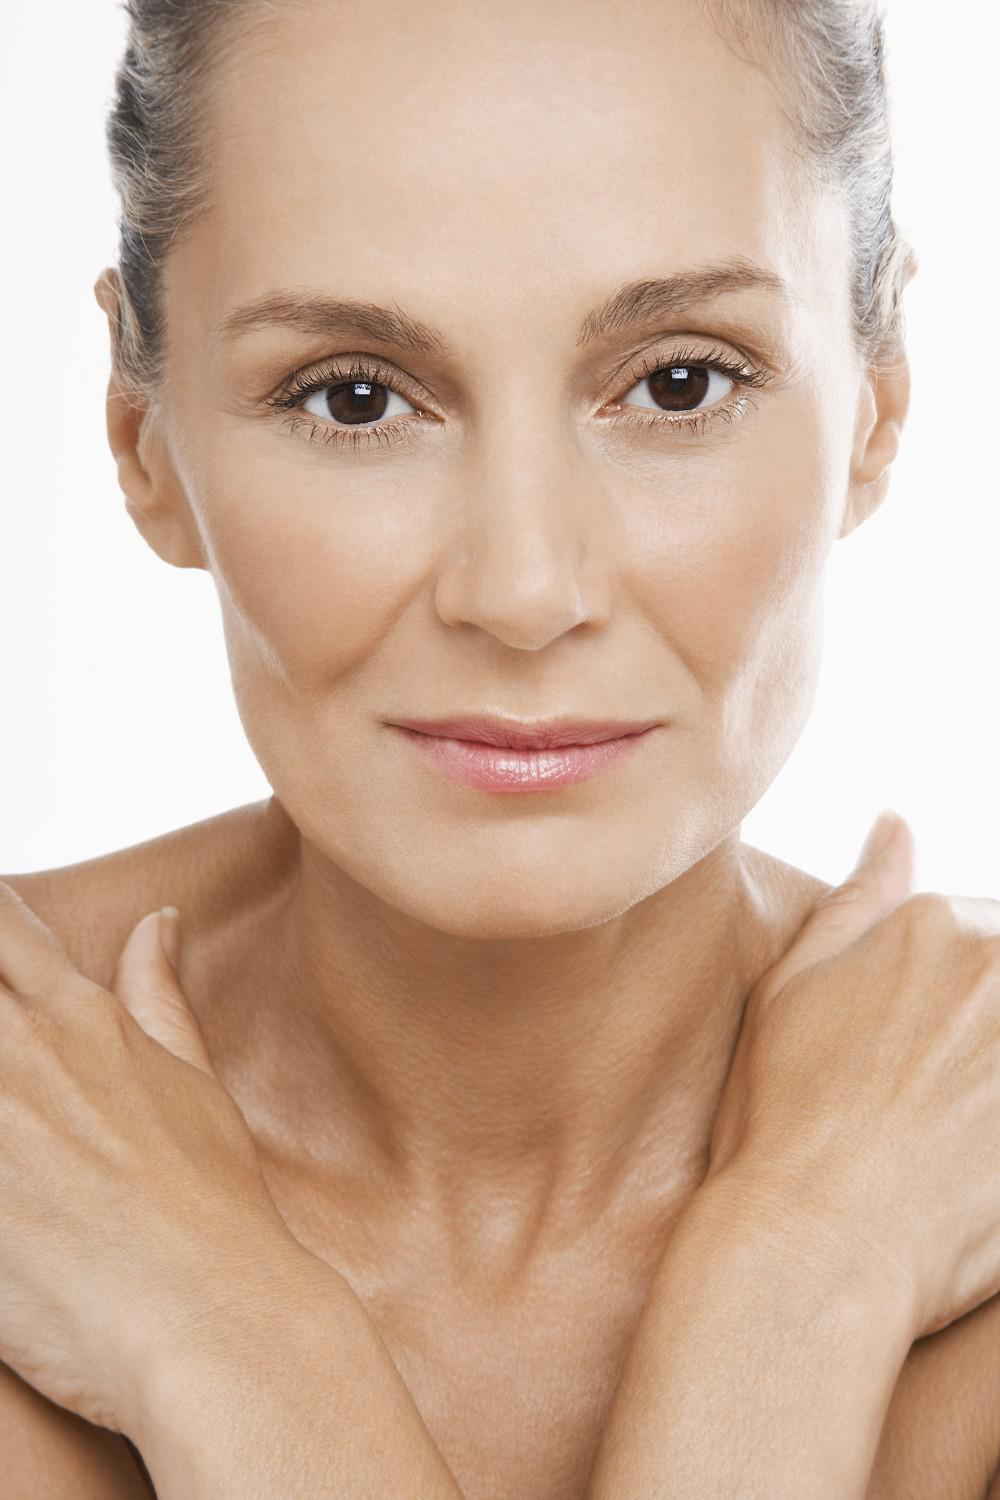 Boost Your Confidence with Botox®